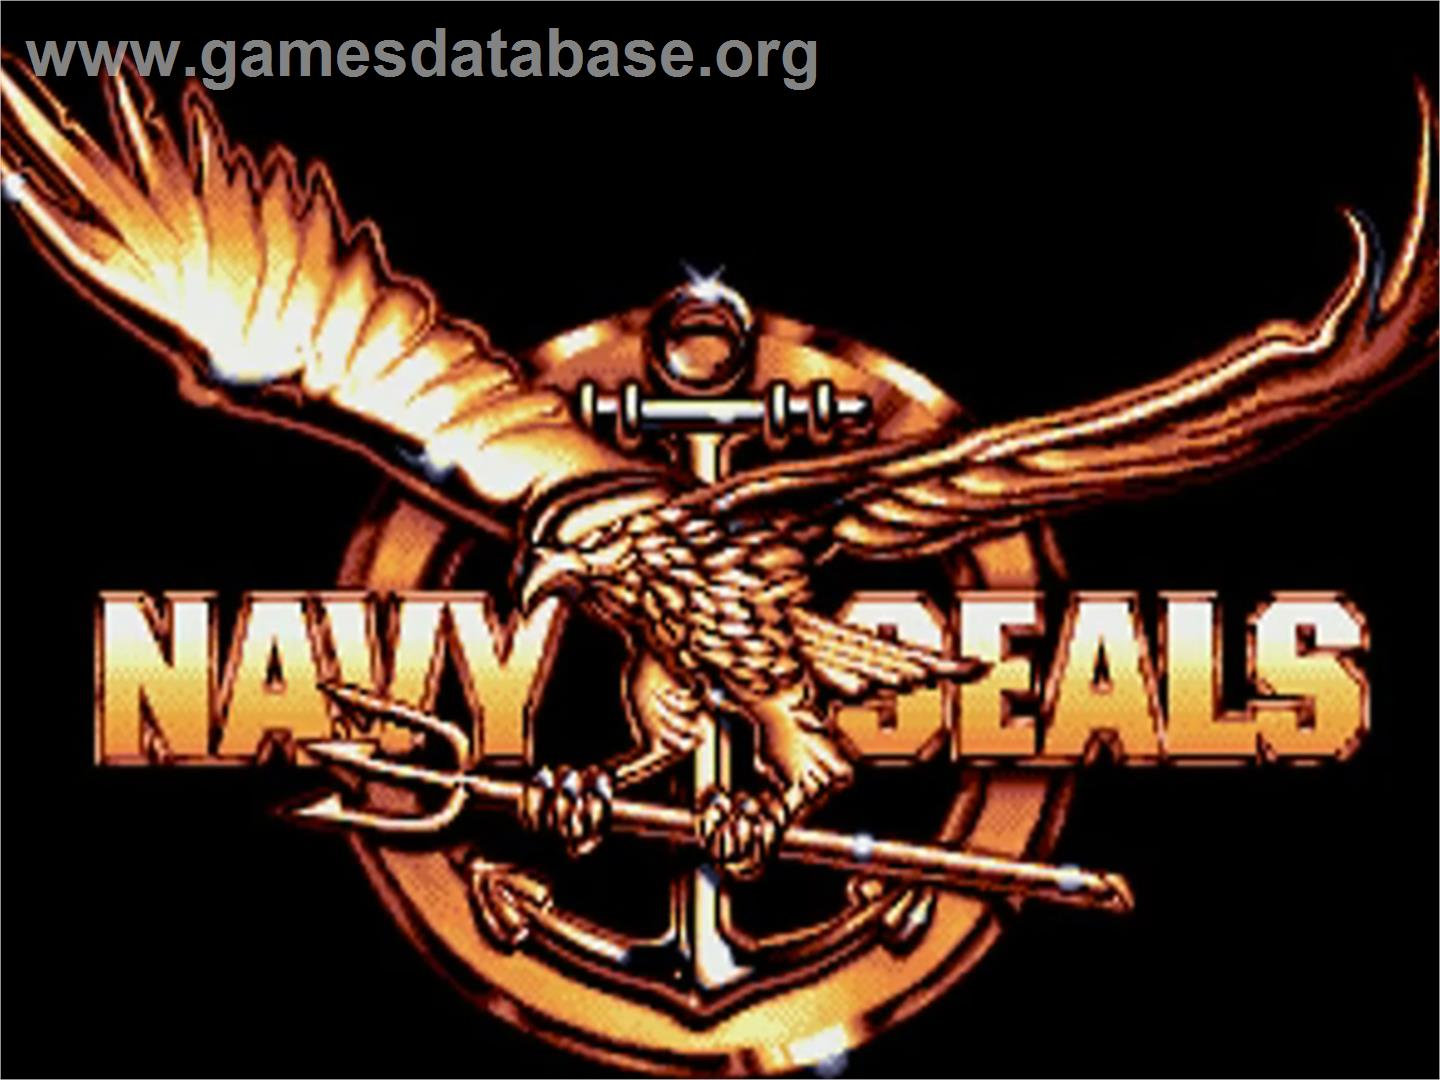 Navy Seals - Commodore Amiga - Artwork - Title Screen